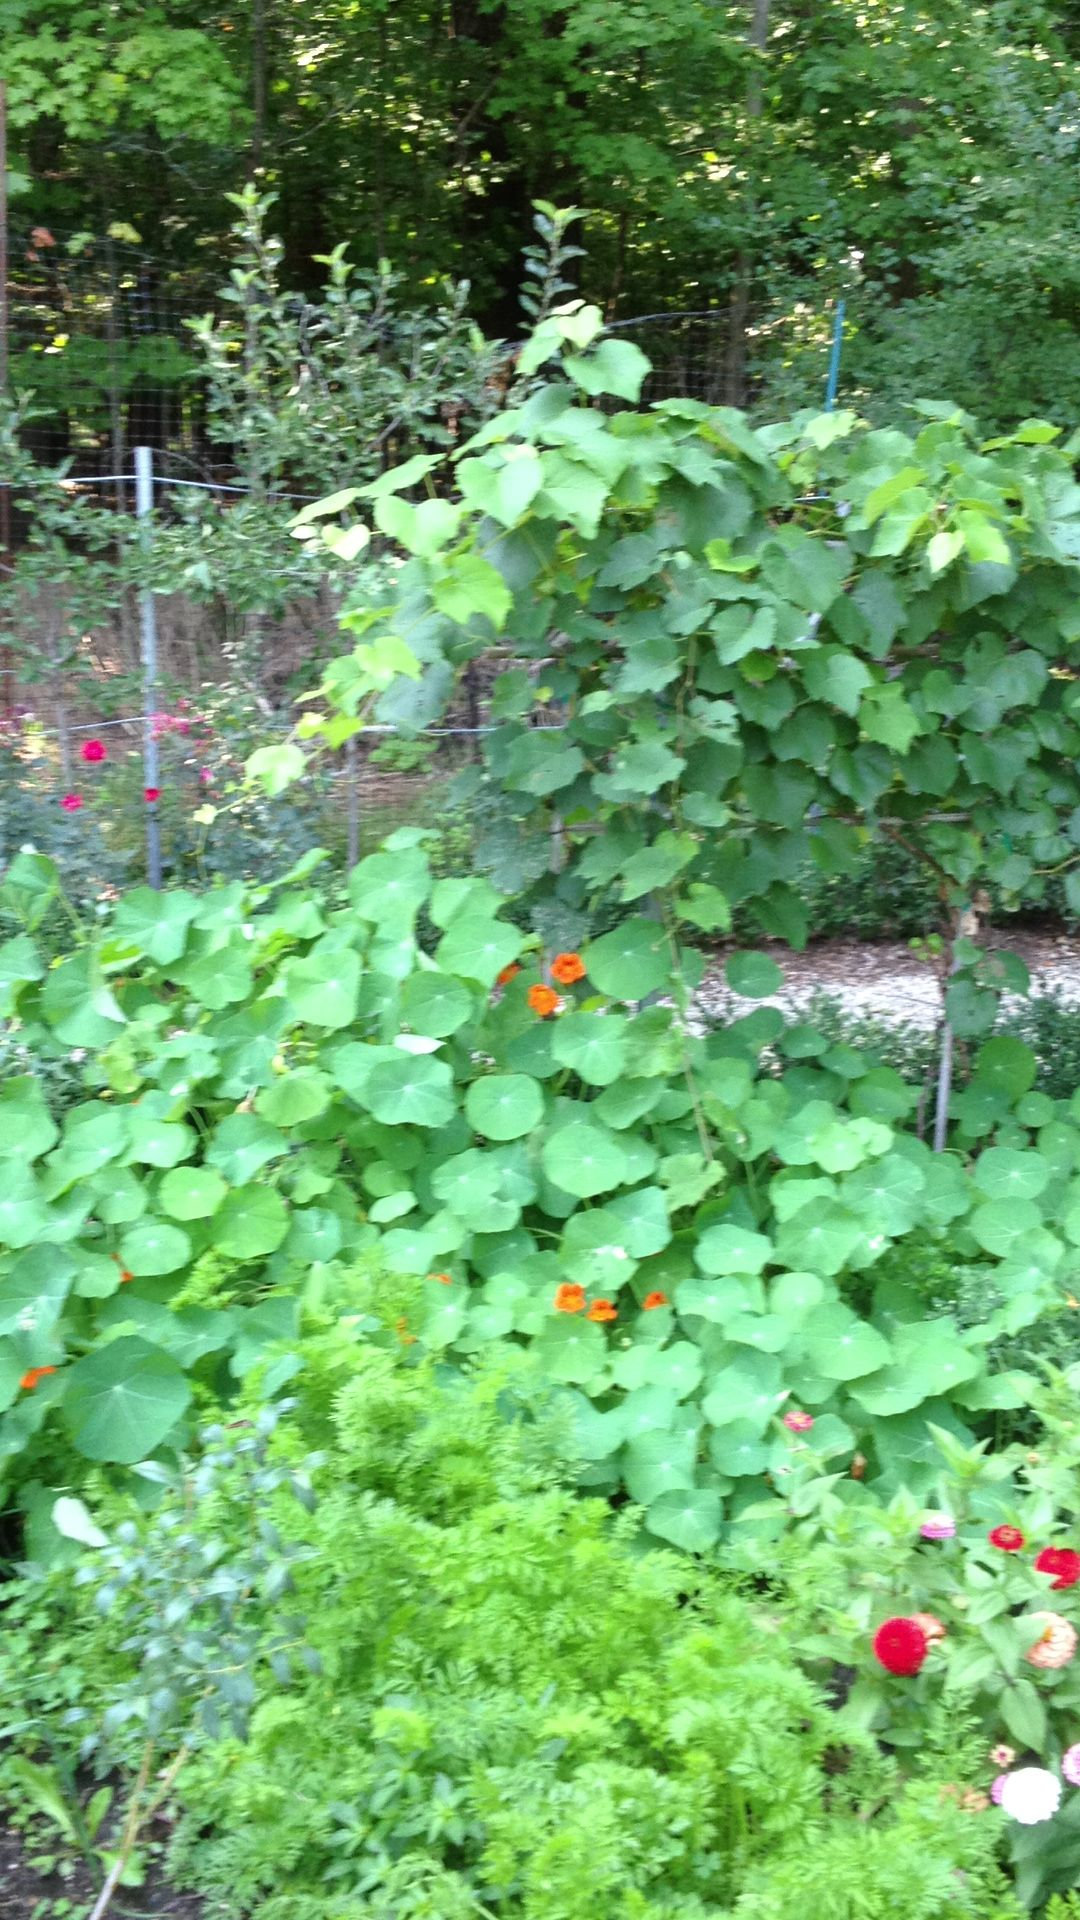 All this from just a few nasturtium seeds